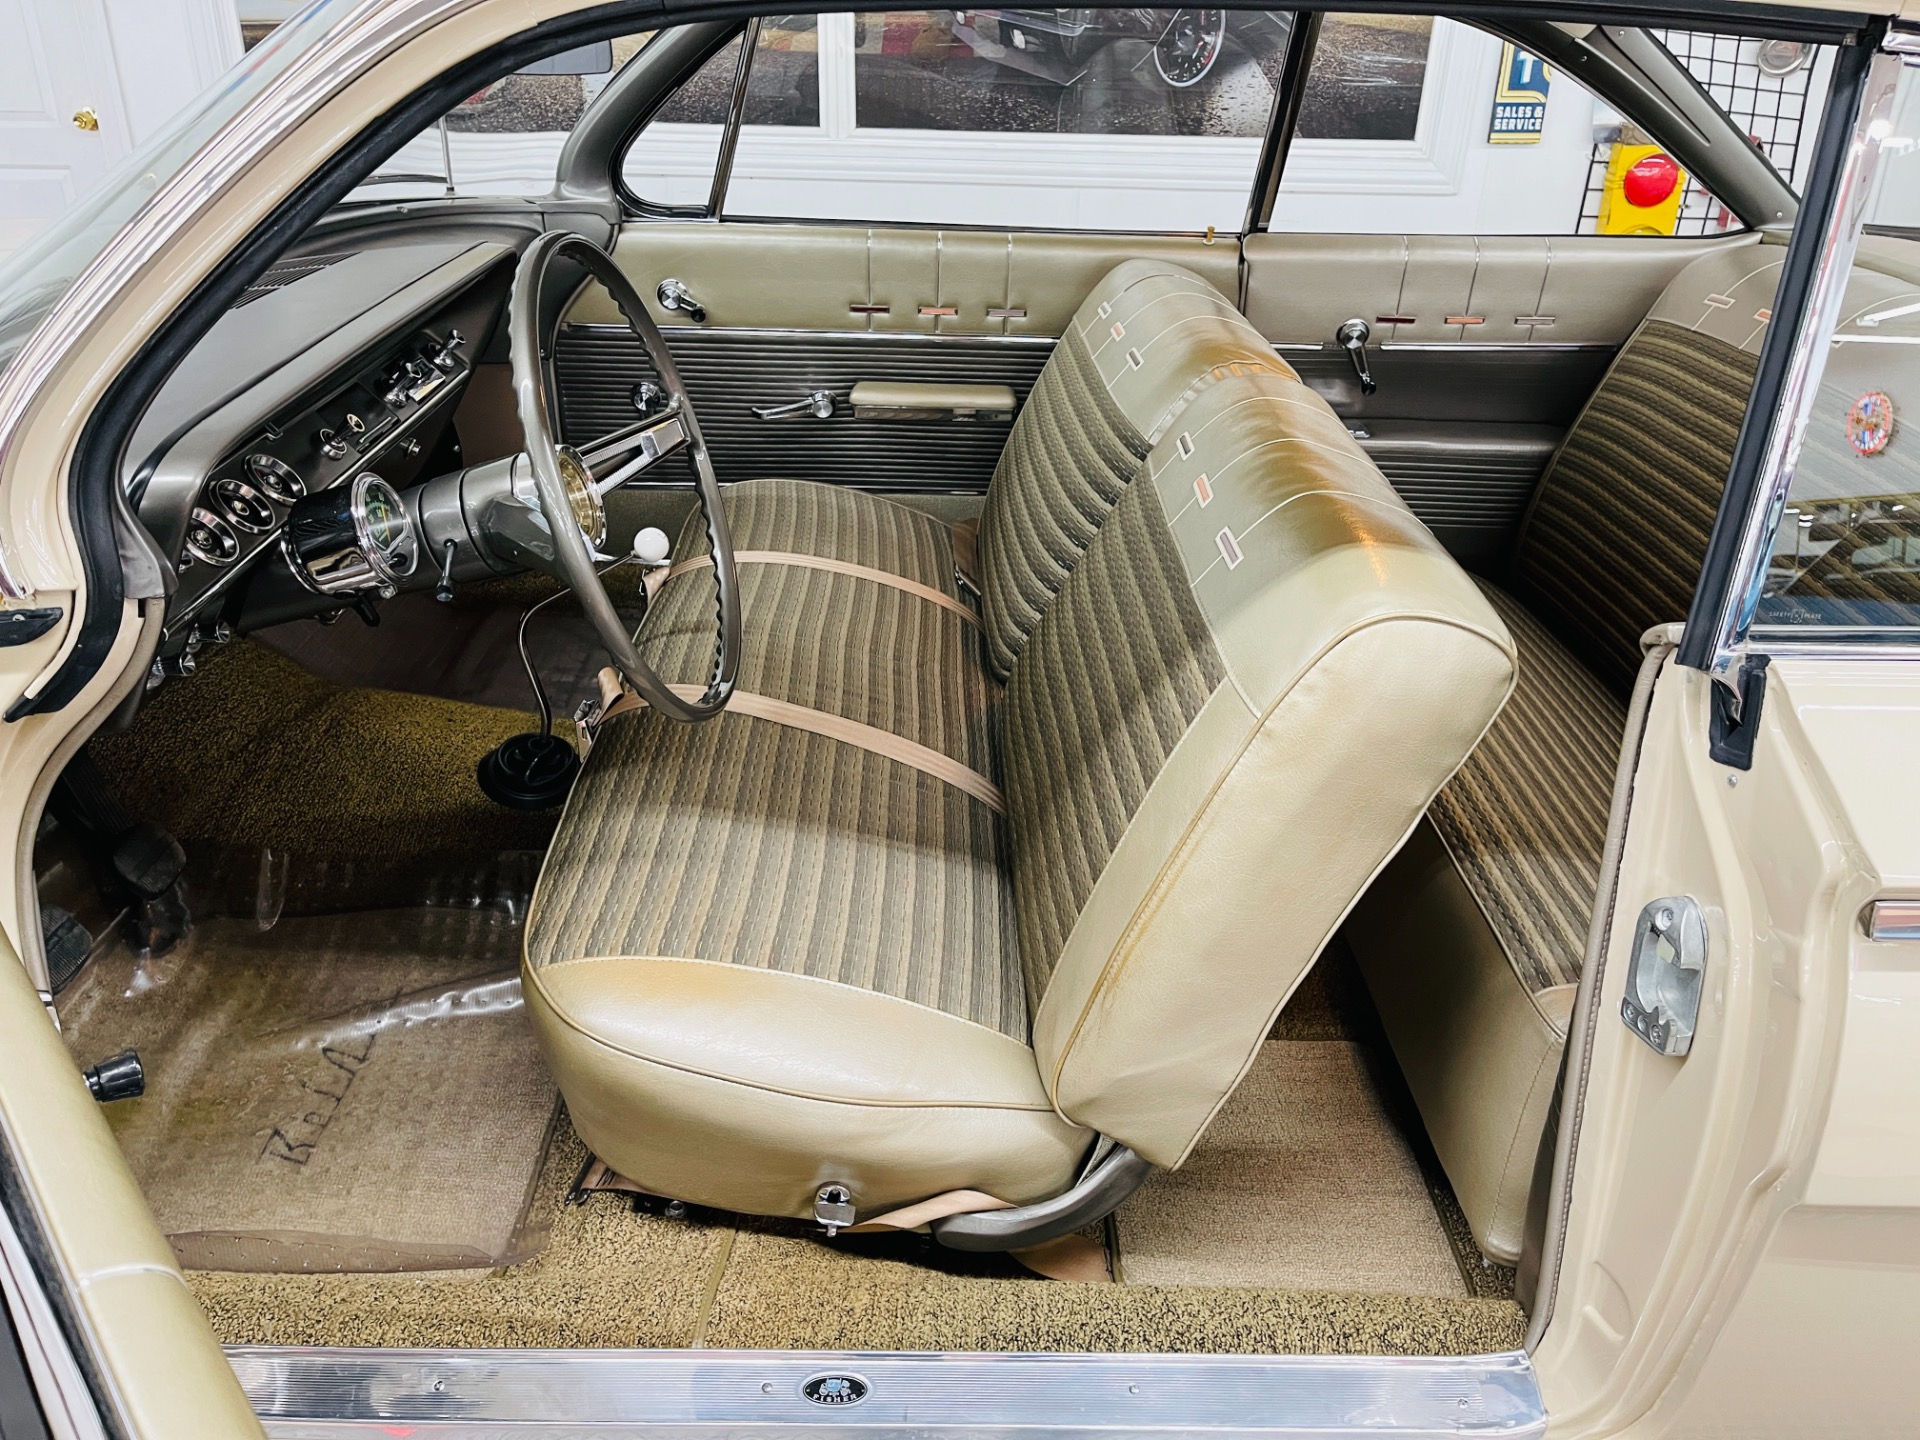 Used 1962 Chevrolet Bel Air - DUAL QUAD 409 TRIBUTE - 4 SPEED MANUAL - SHOW QUALITY - SEE VIDEO - | Mundelein, IL